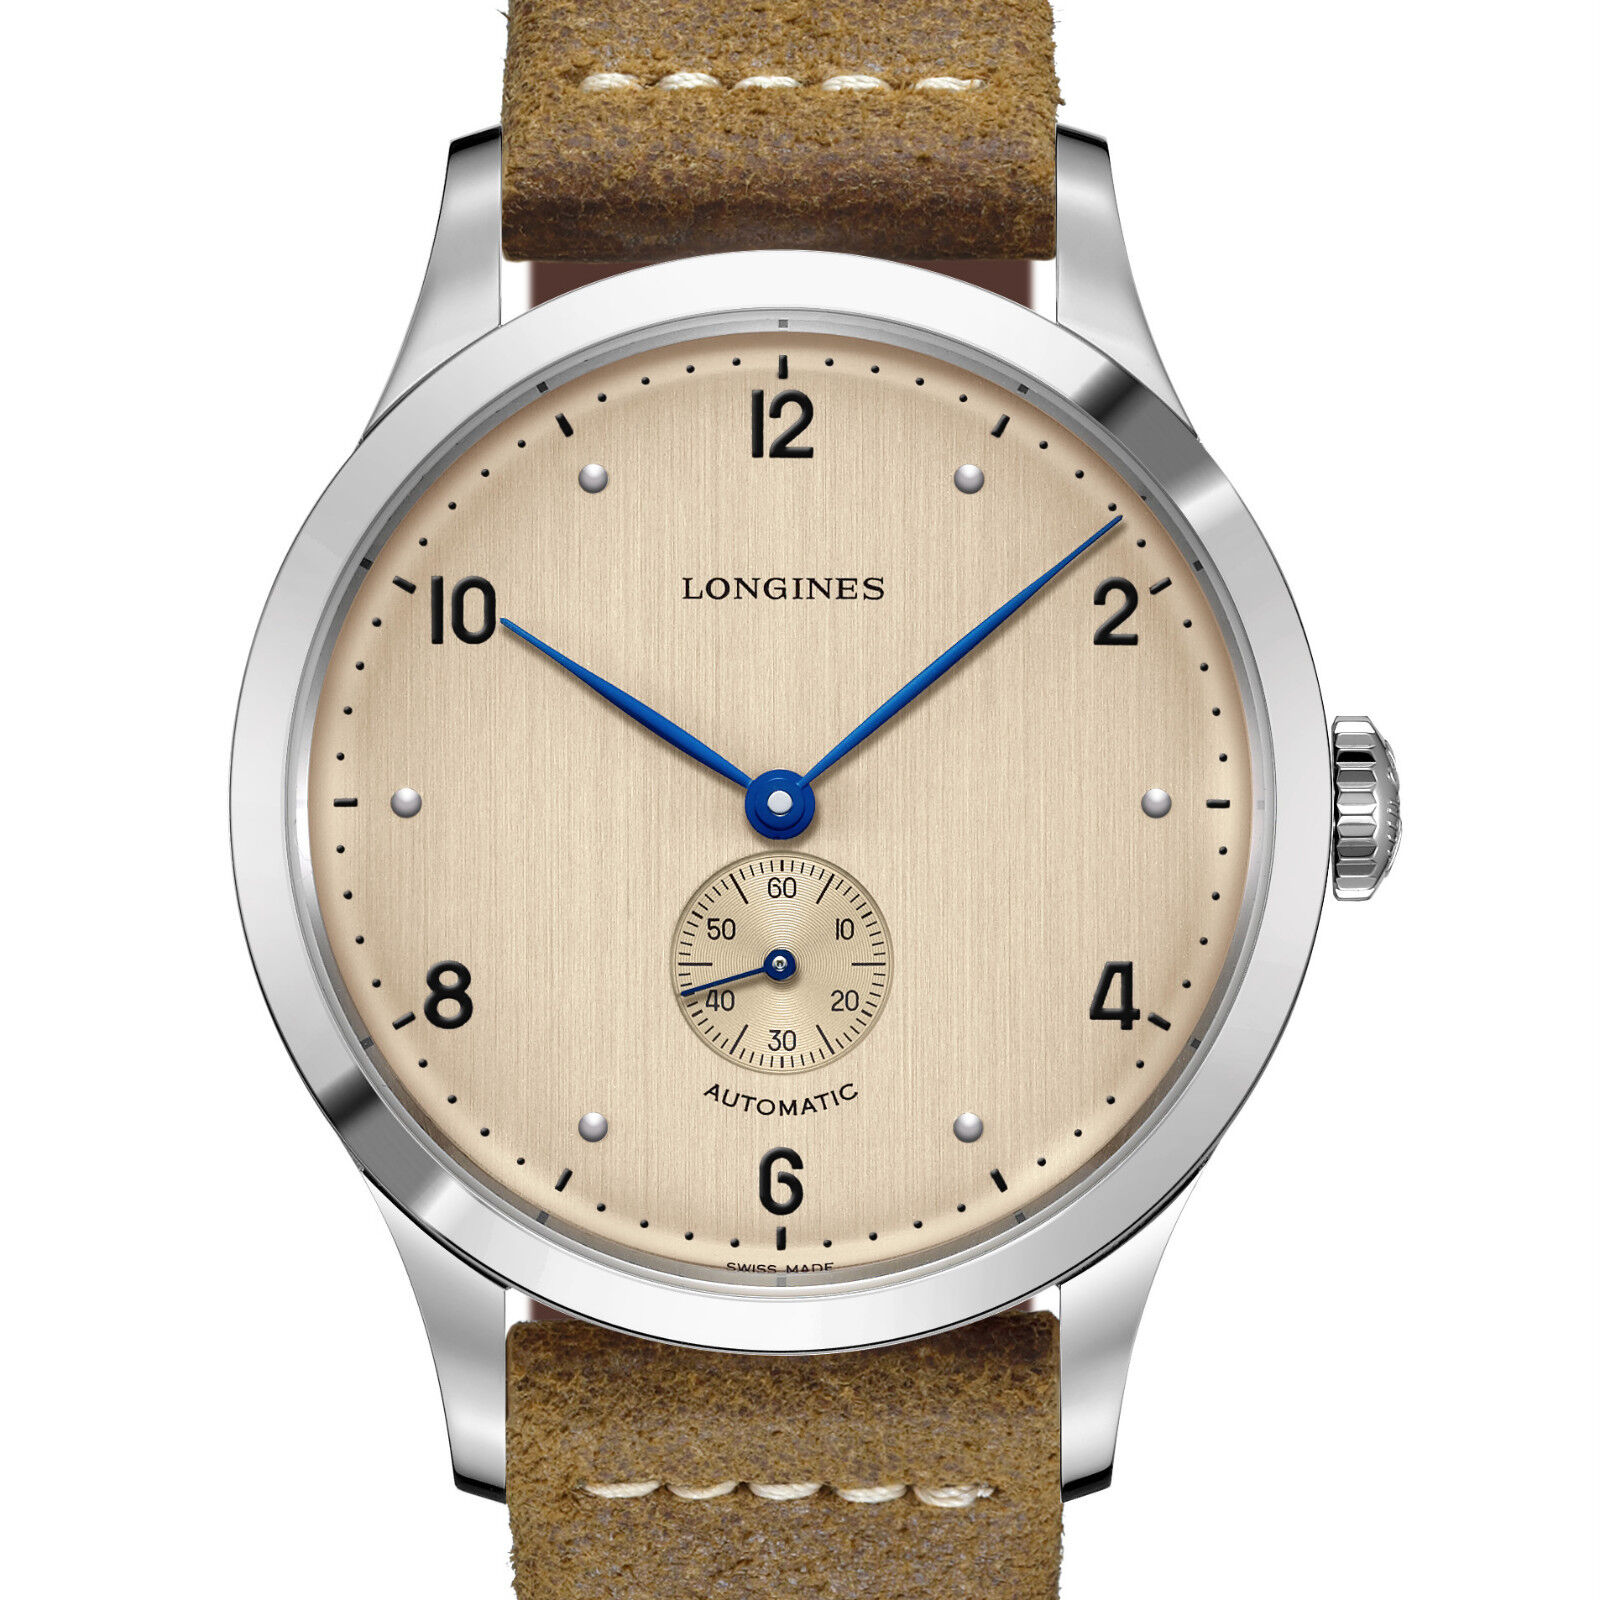 Longines Heritage 1945 Watch 40mm Steel Brown L2.813.4.66.0 Hodinkee NEW - watch picture 1